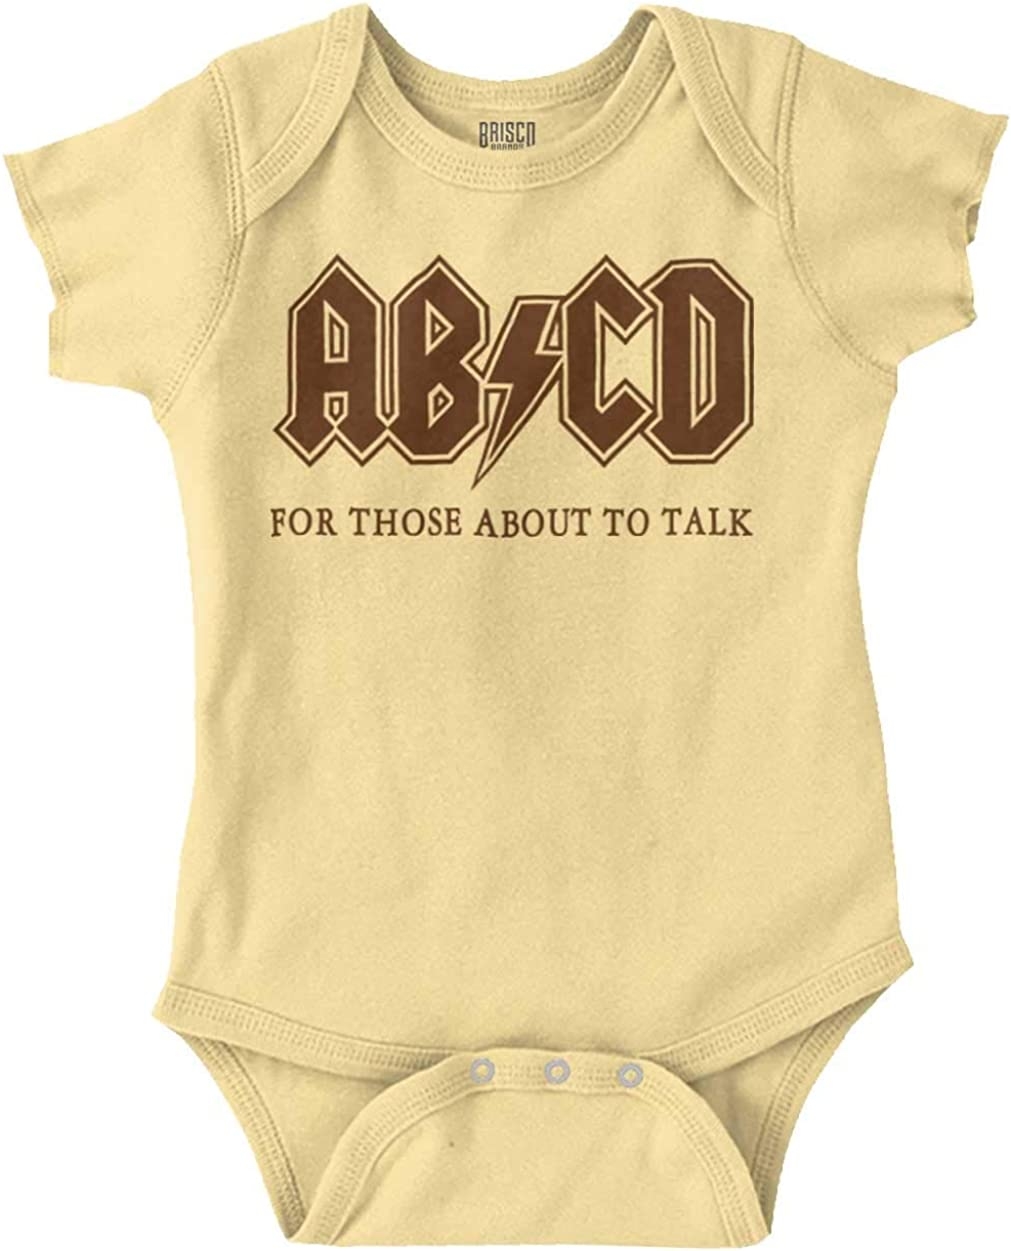 Black ABCD Lightning Baby Bodysuit|Personalized Onesie|Baby Gift|Baby Clothes|Unisex Bodysuit|Baby Announcement|Newborn Gift|New Baby Gift